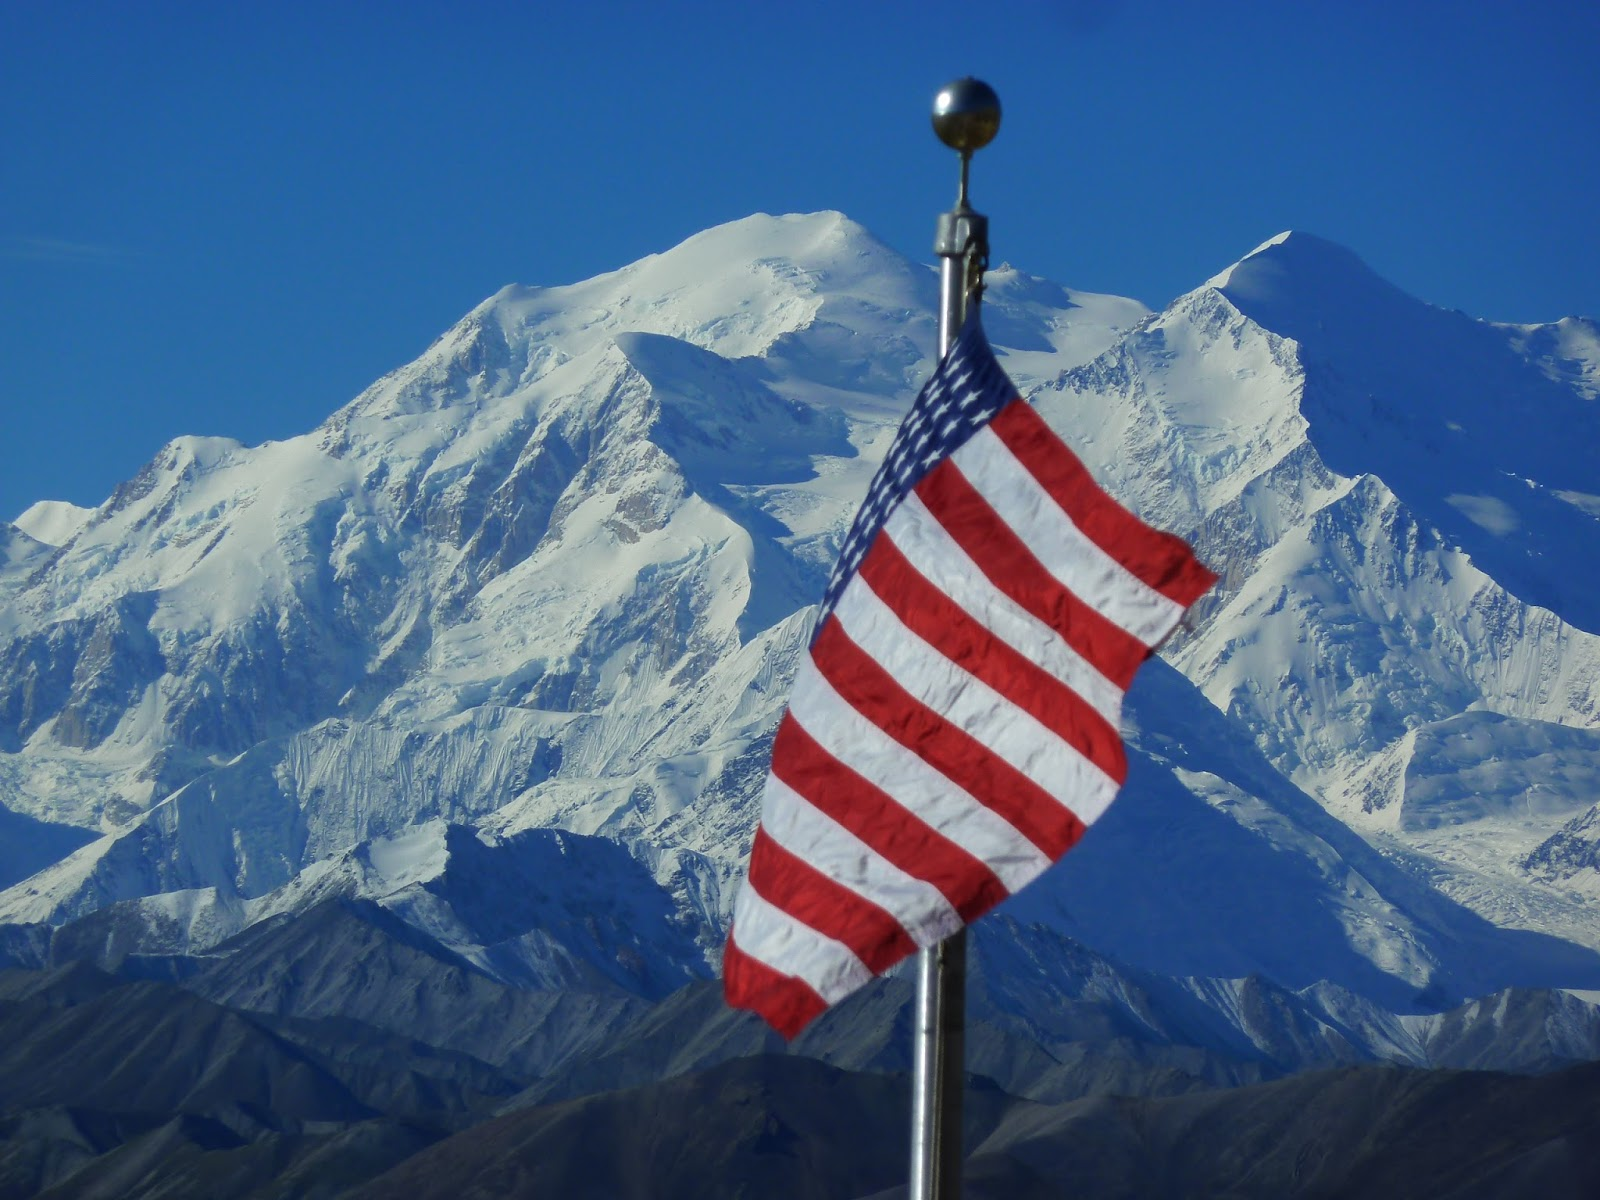 mt mckinley from the eielson visitors center